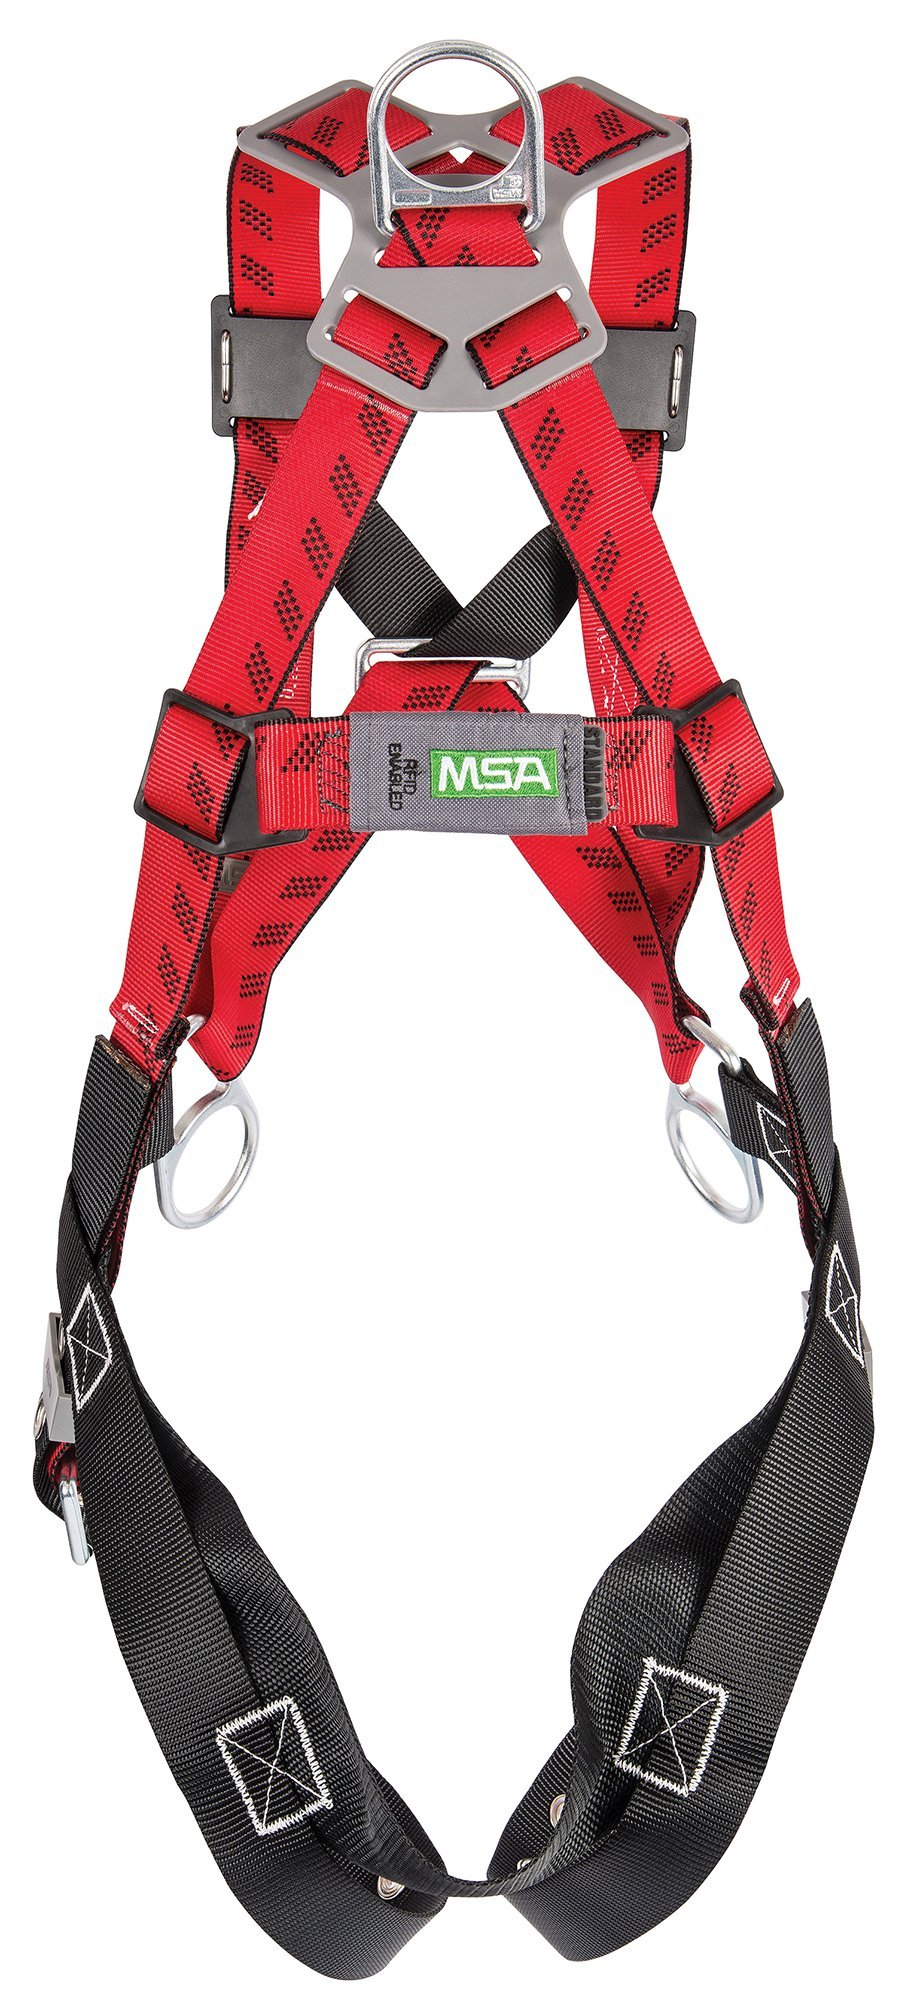 MSA Safety 10041609 TechnaCurv Pullover Style Harnesses, Tongue Buckle Leg Straps, Qwik-Fit Chest Strap, Back, Hip and Chest D-Rings, Shoulder Padding, Standard